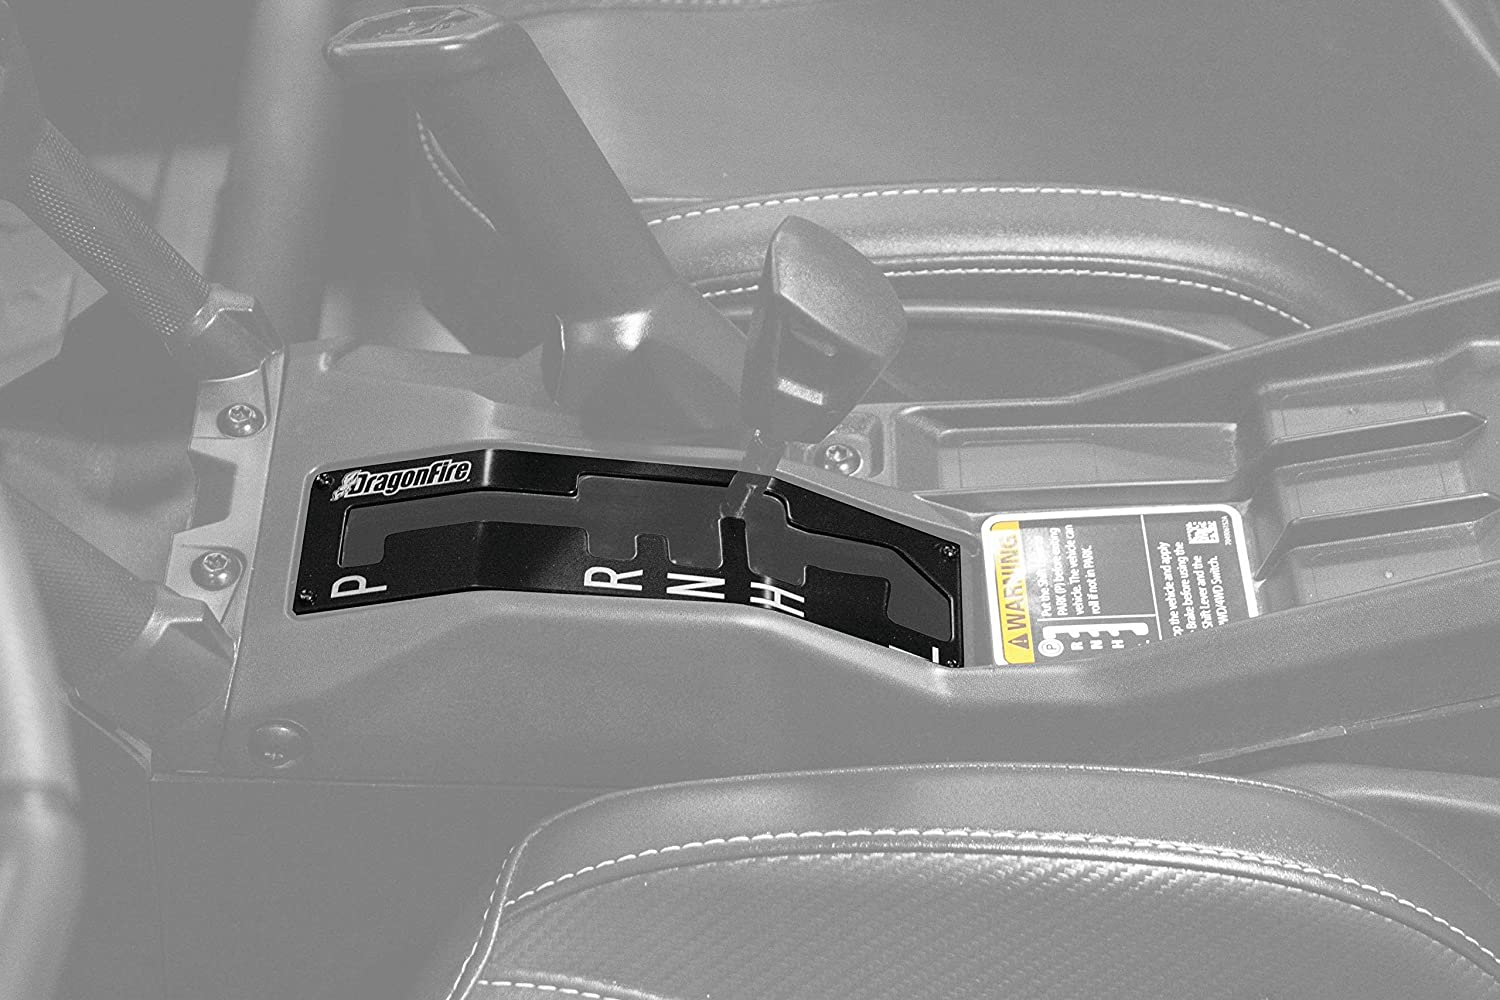 KEMIMOTO Racing Shift Gate Compatible with Can Am Maverick X3 X3 Shift Gate Lever Indicator